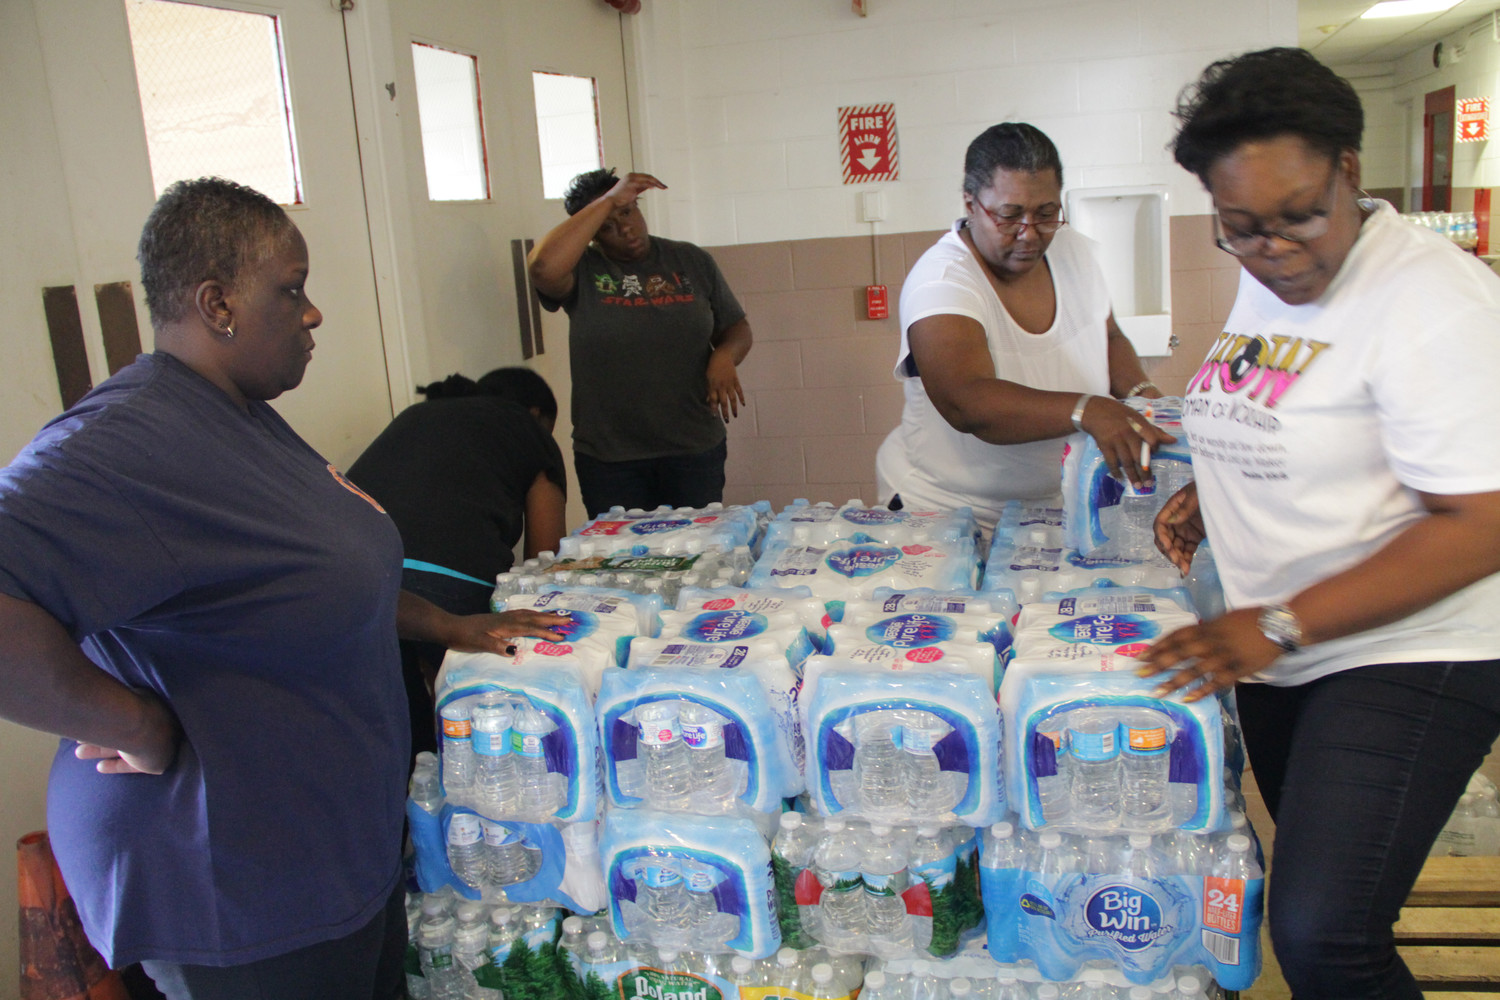 Zion Cathedral volunteers, from left Melissa R. Harris, Rogina Garcia, Tracey Matthews and Regina Roundtree stacked pallets of donated water to be shipped to hurricane victims.